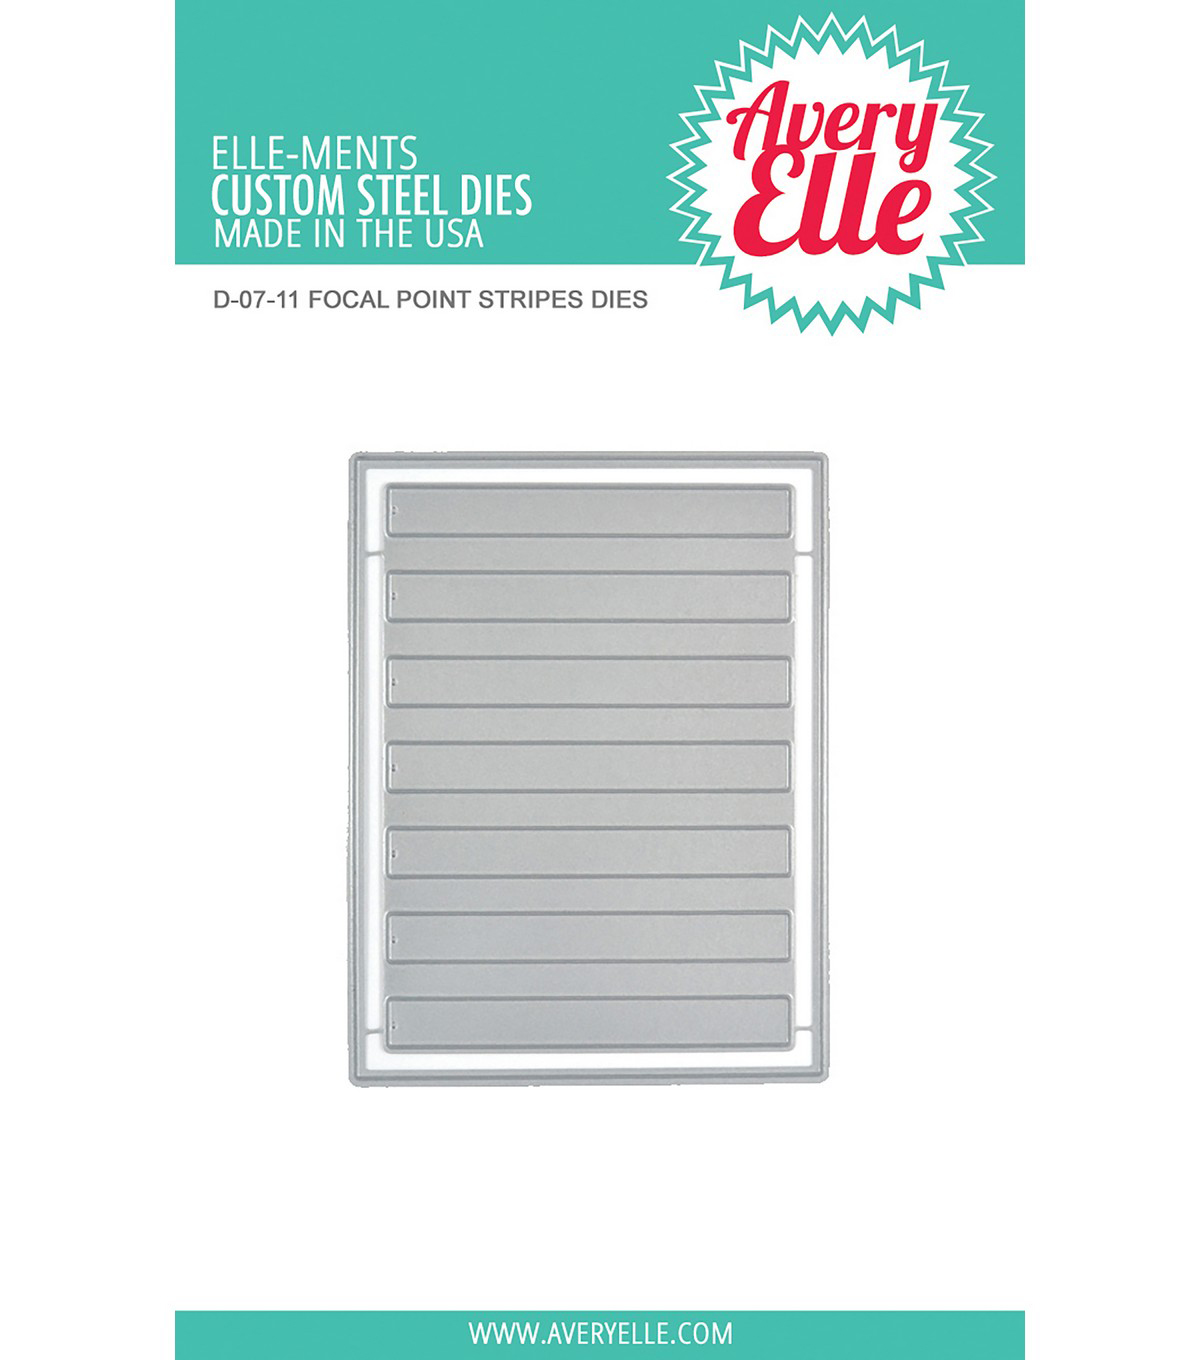 Avery Elle Elle-Ments 2 pk Dies-Focal Point Stripes